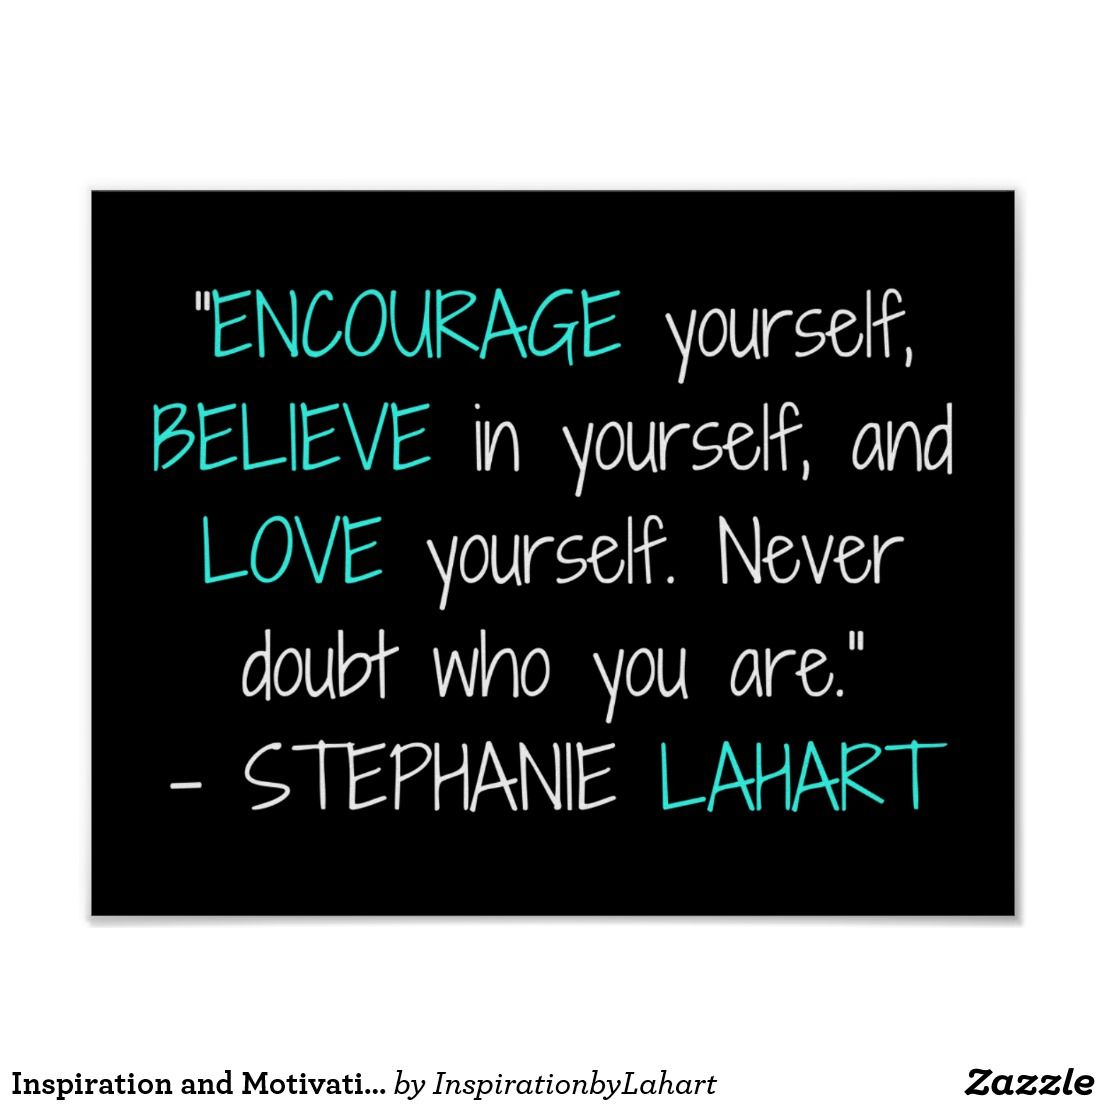 Inspiration and Motivation Quote Poster  Zazzle.com in 3